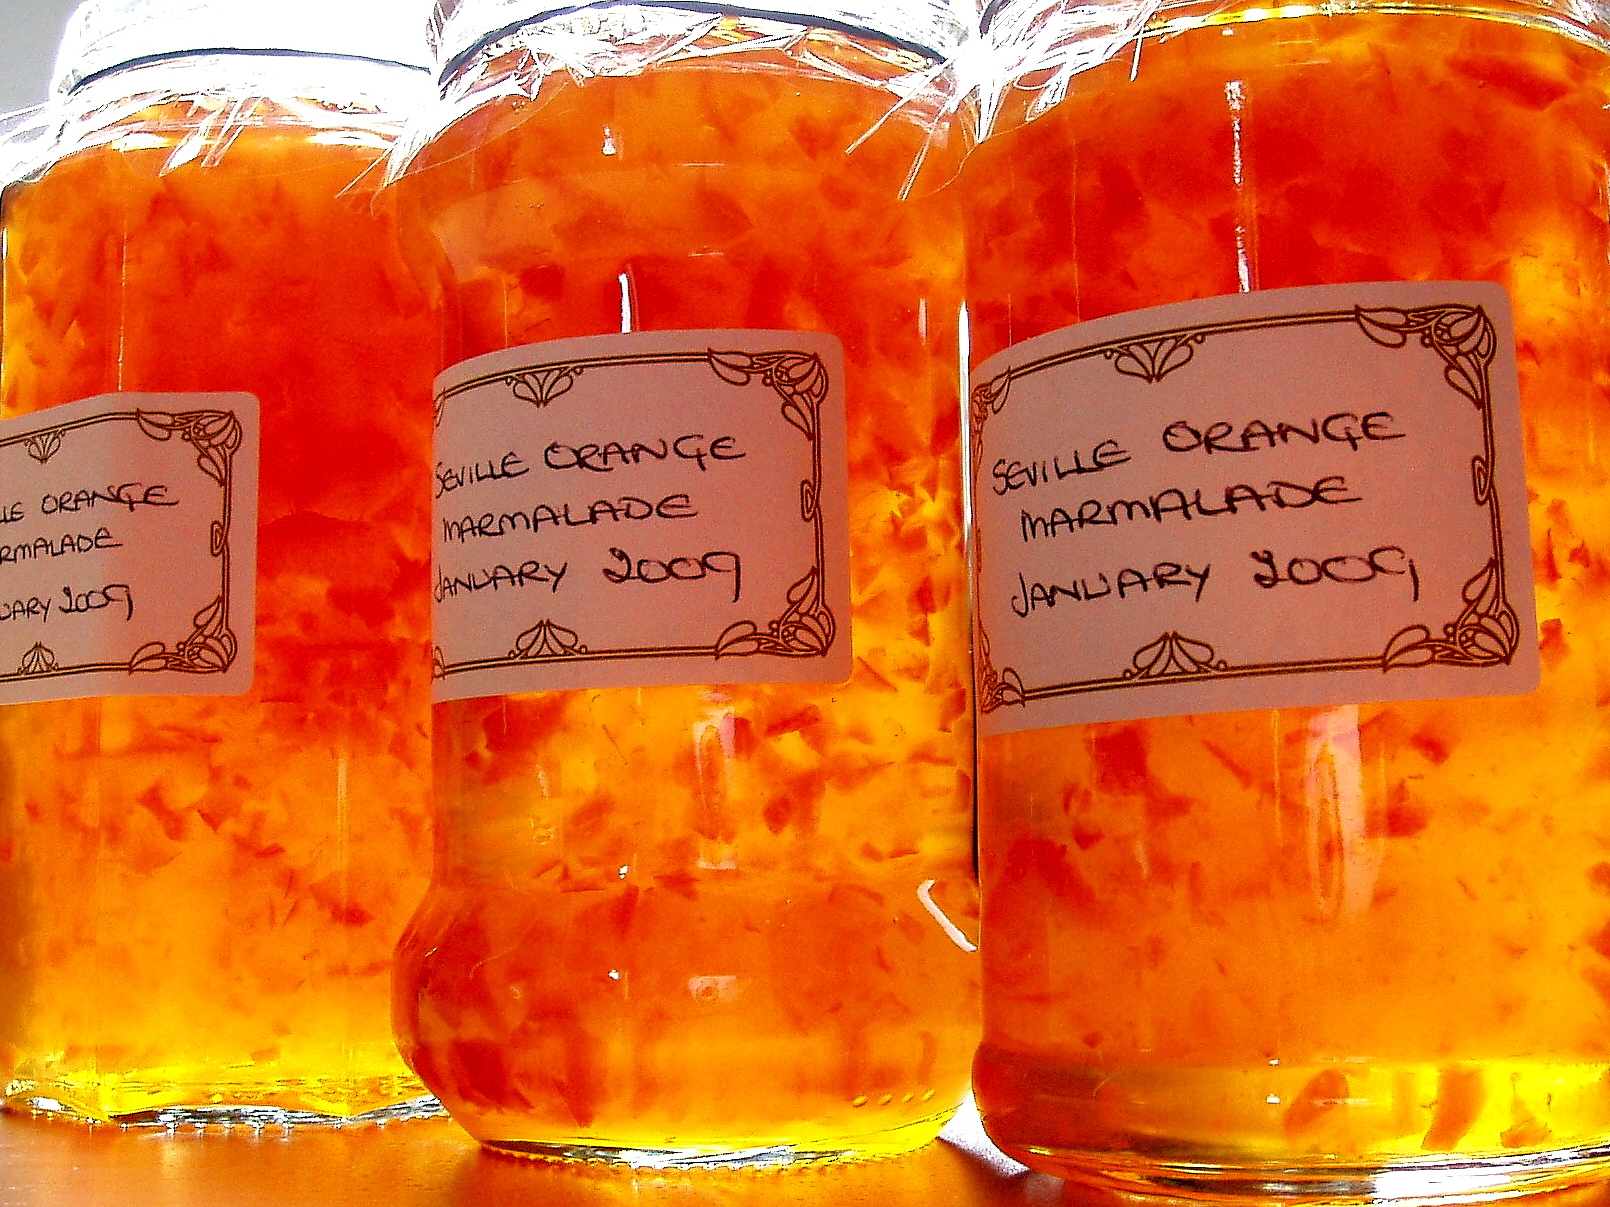 Homemade Marmalade Jam contains Herspiridin, a natural pigment (flavanone) which kills cancer